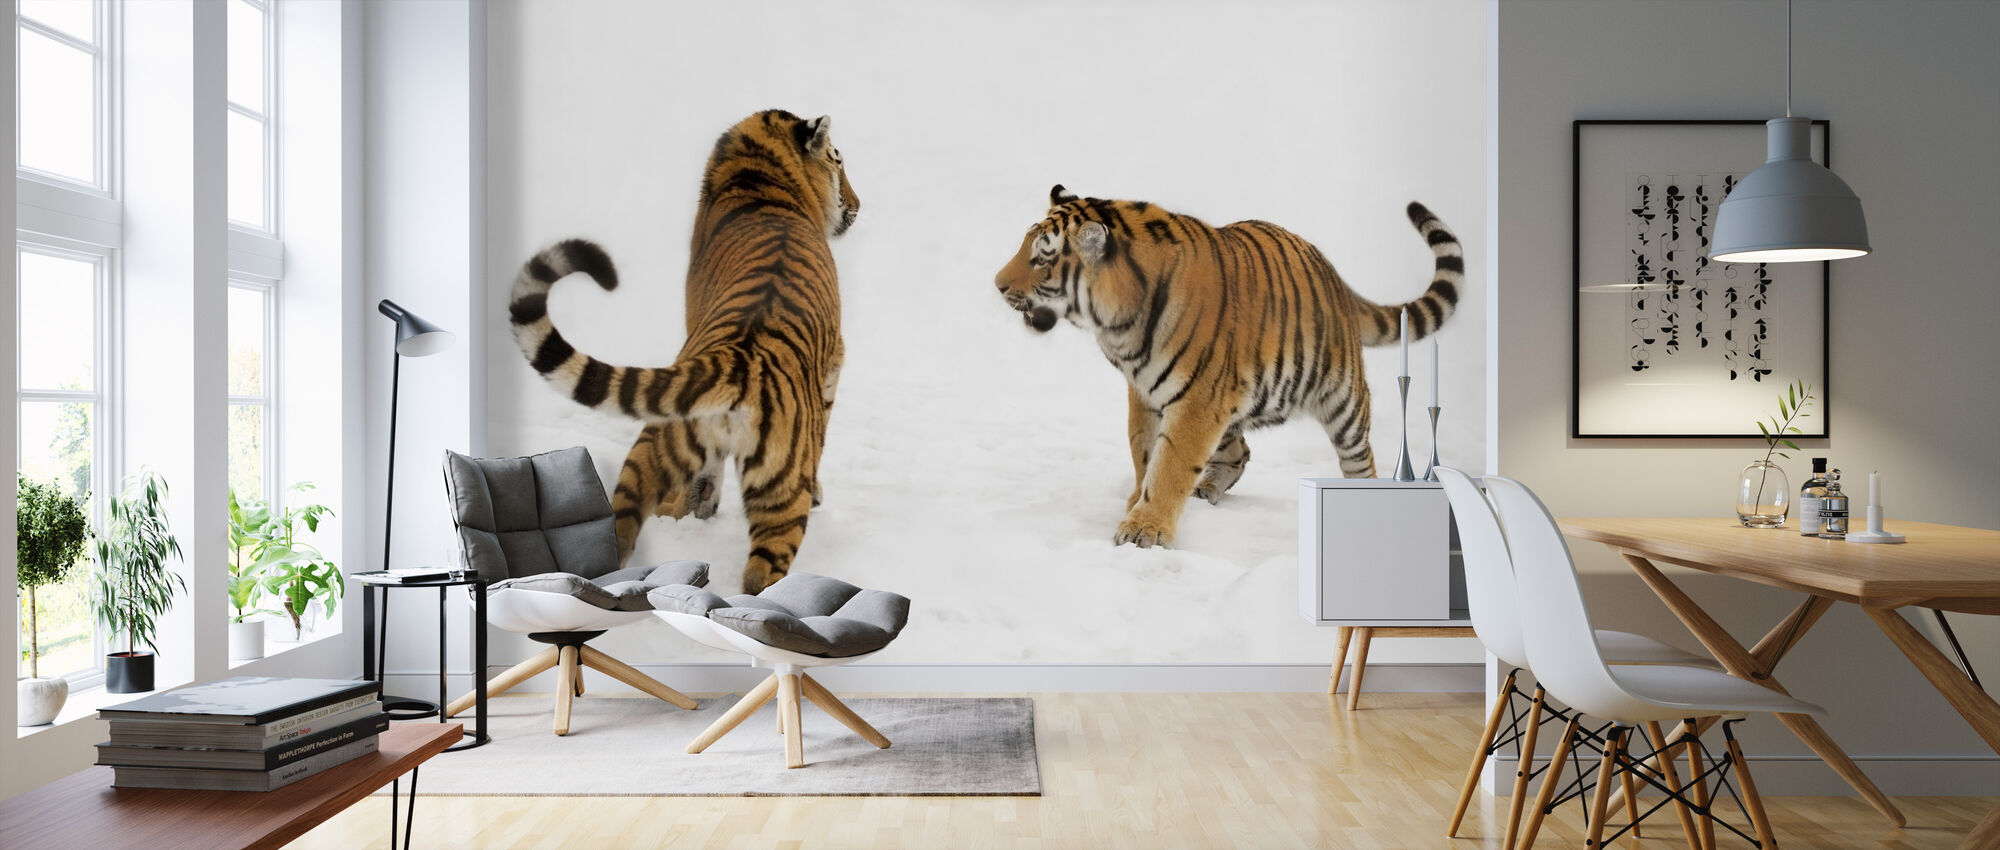 Tigers Play Fighting - Wallpaper - Living Room